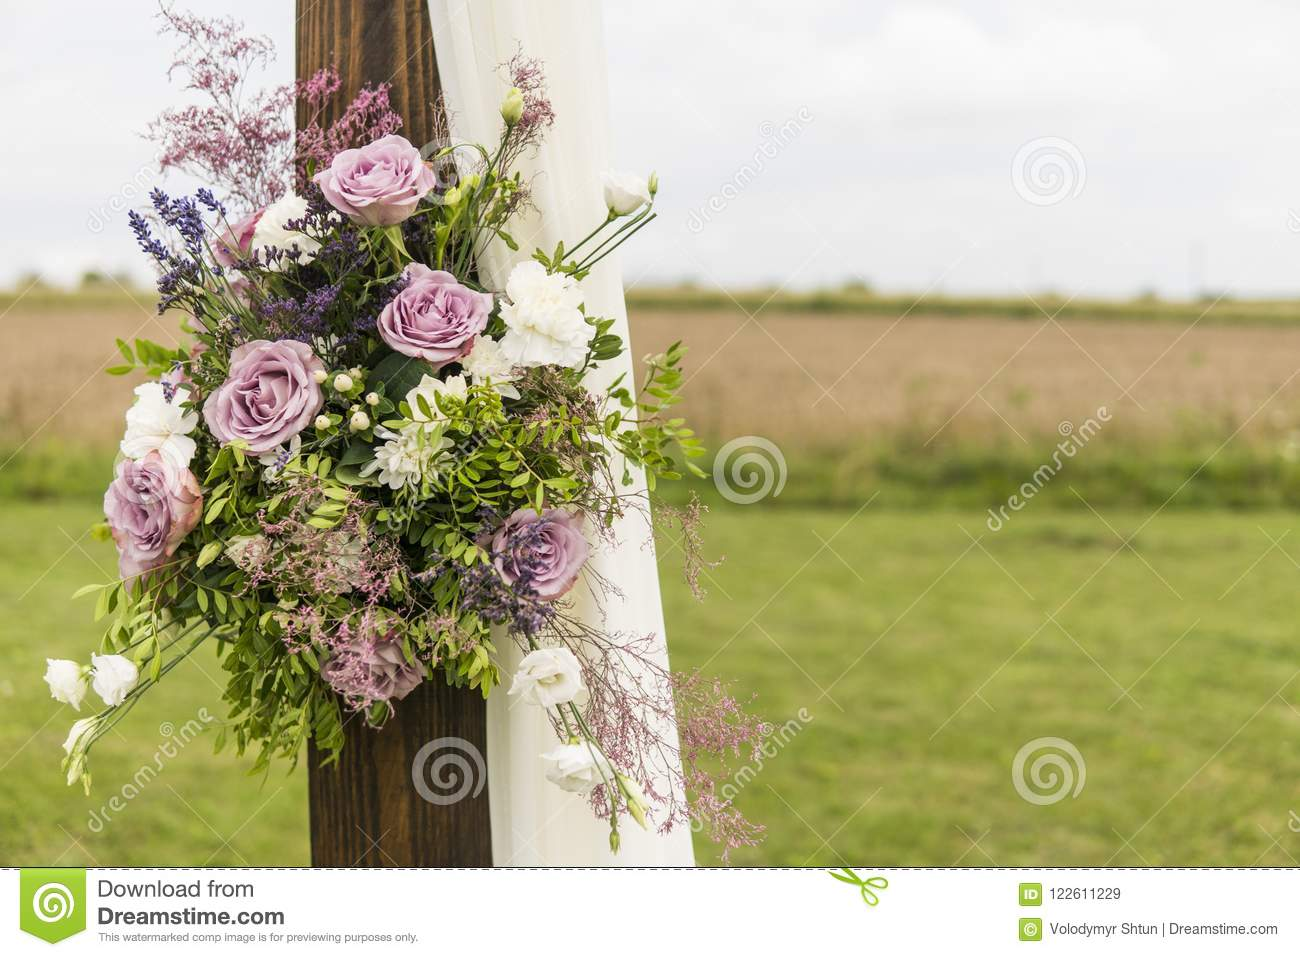 Floral Wooden Arch With White Cloth And Fresh Violet Pink White